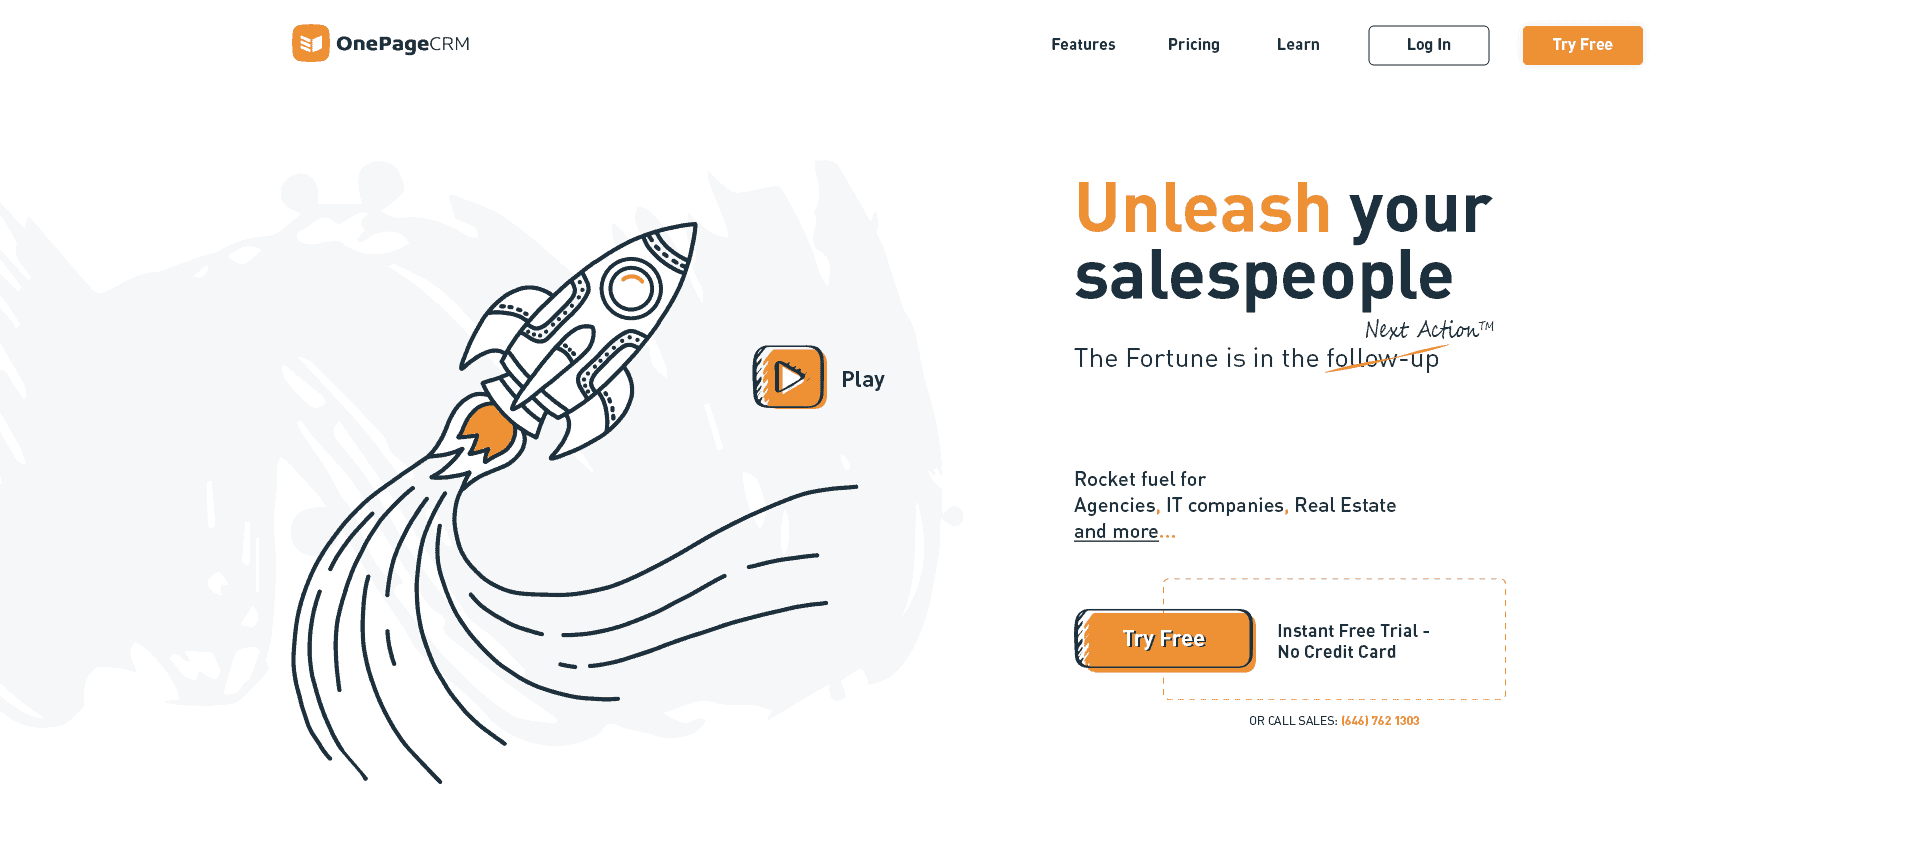 Action-Focused Sales CRM for SMBs - OnePageCRM